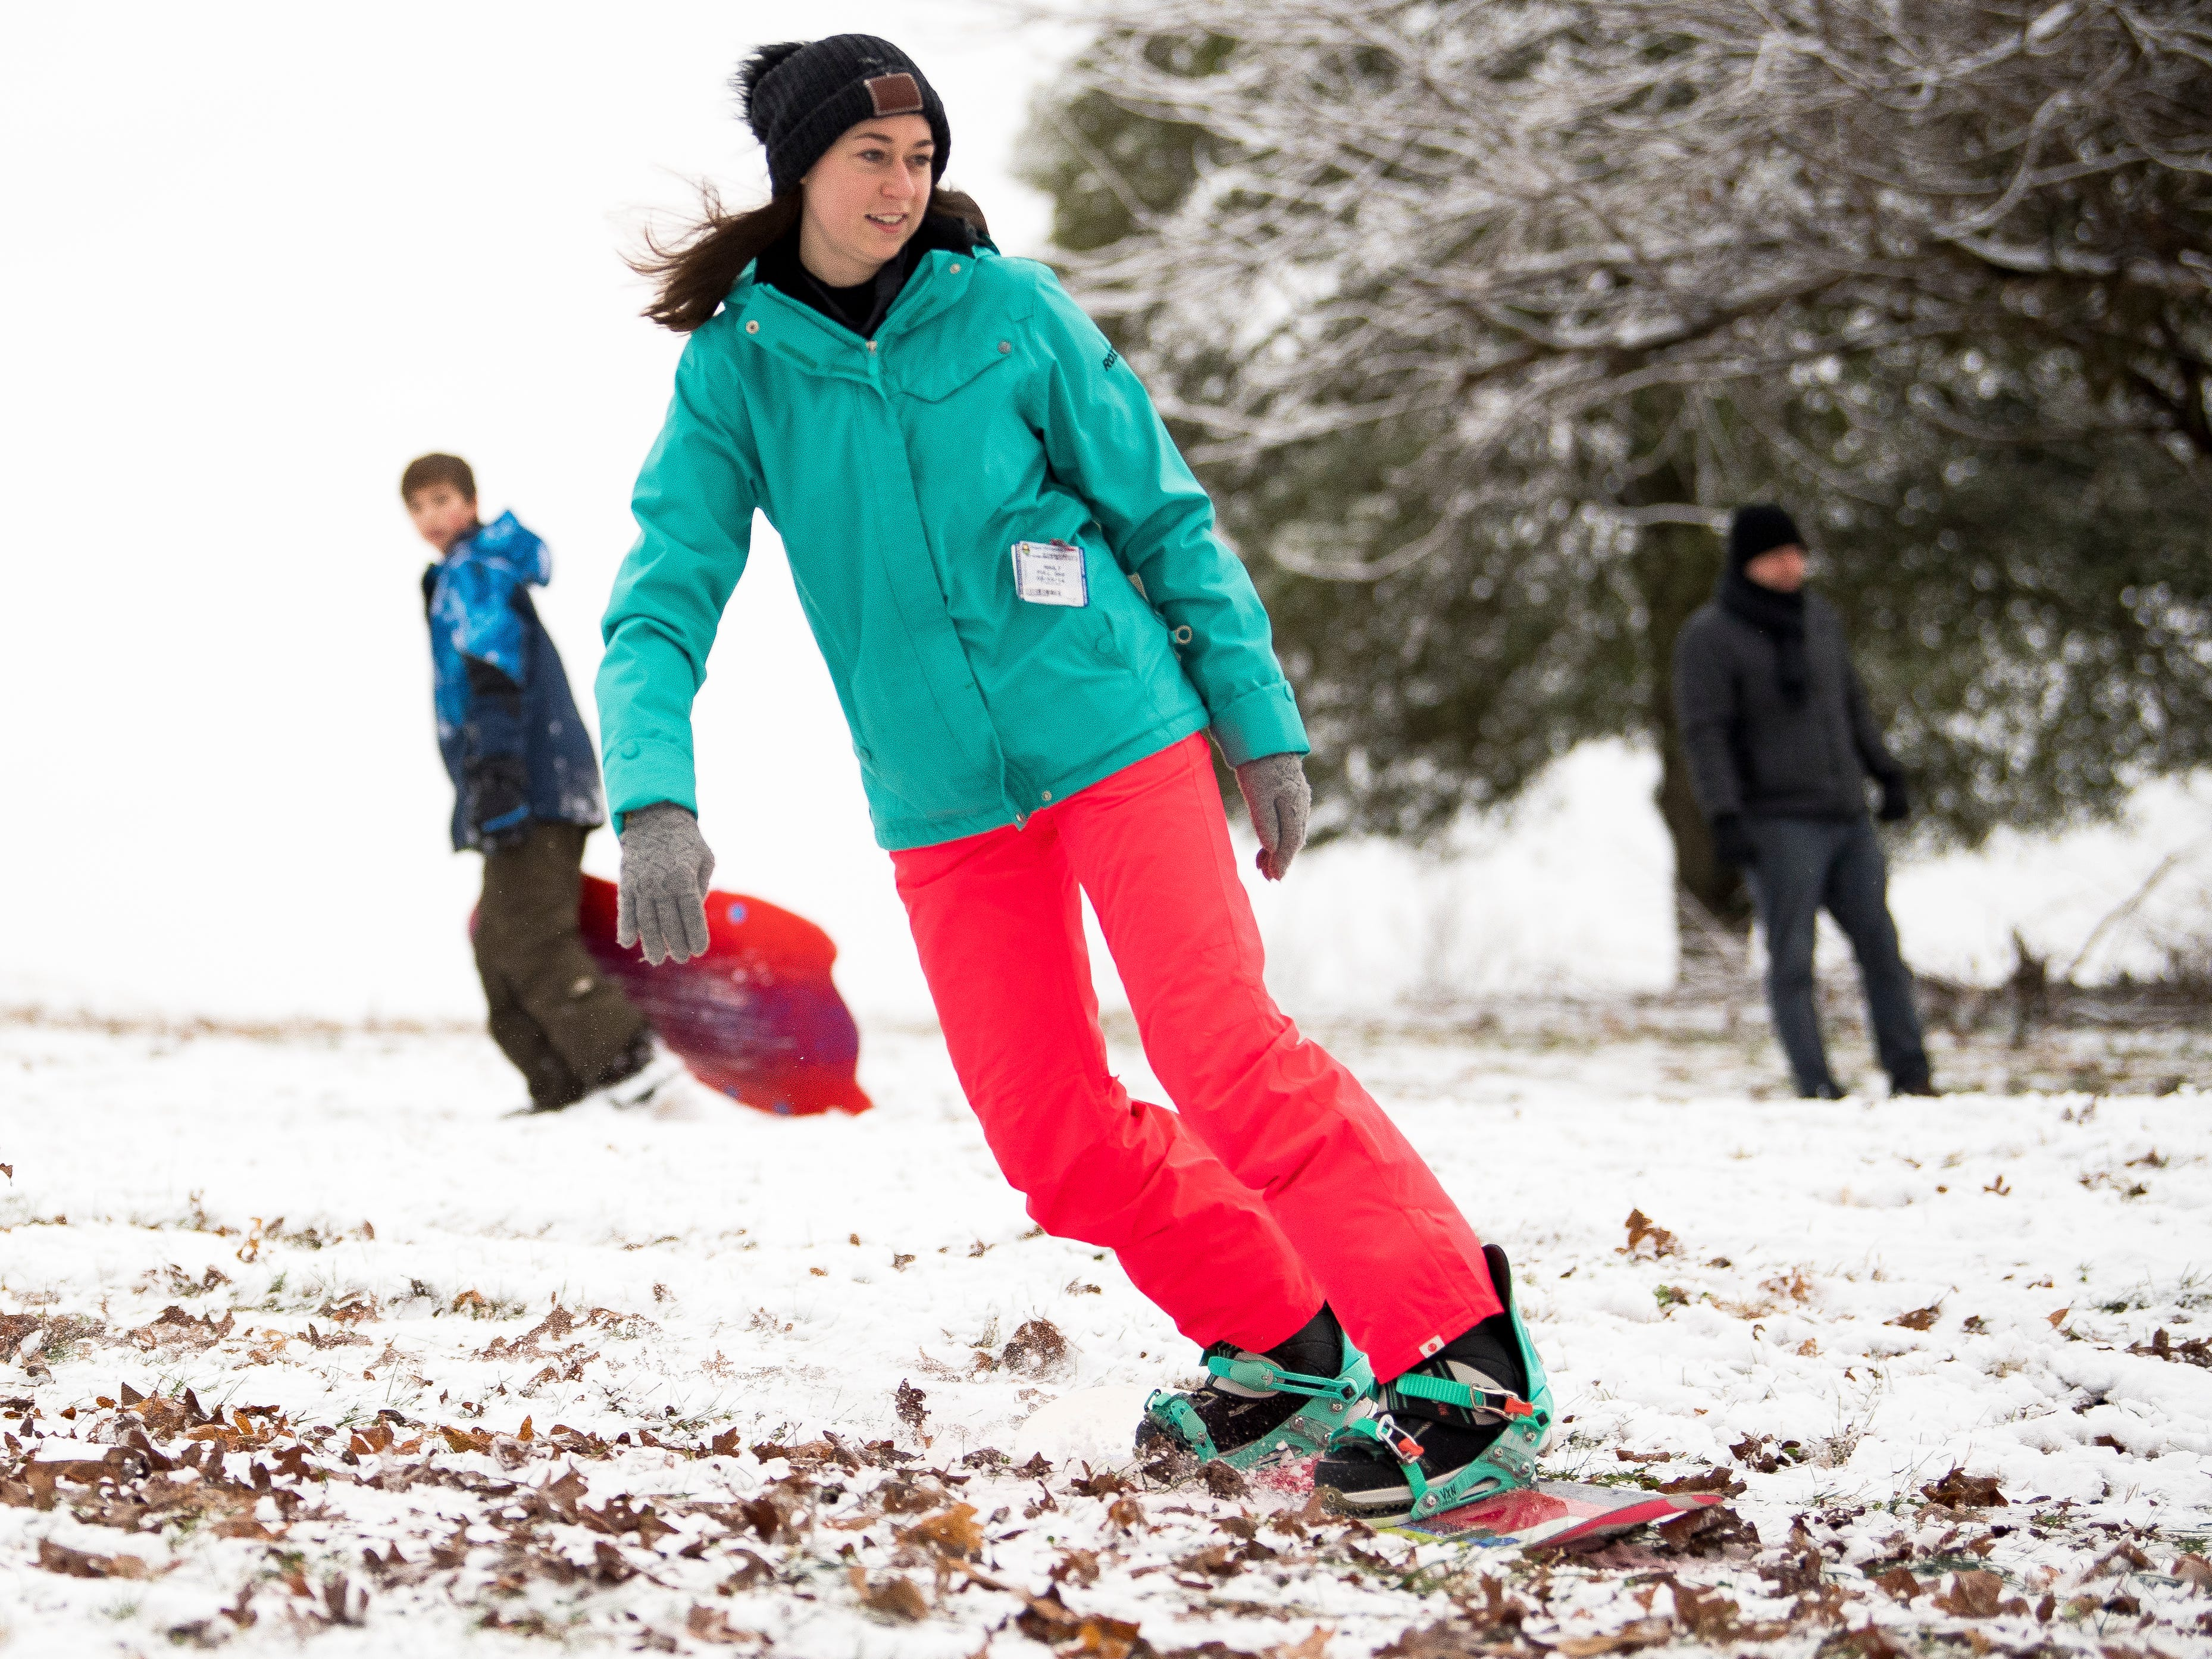 Mary Alice Cox snowboards down a steep hill at Lakeshore Park in Knoxville on Tuesday, January 29, 2019.